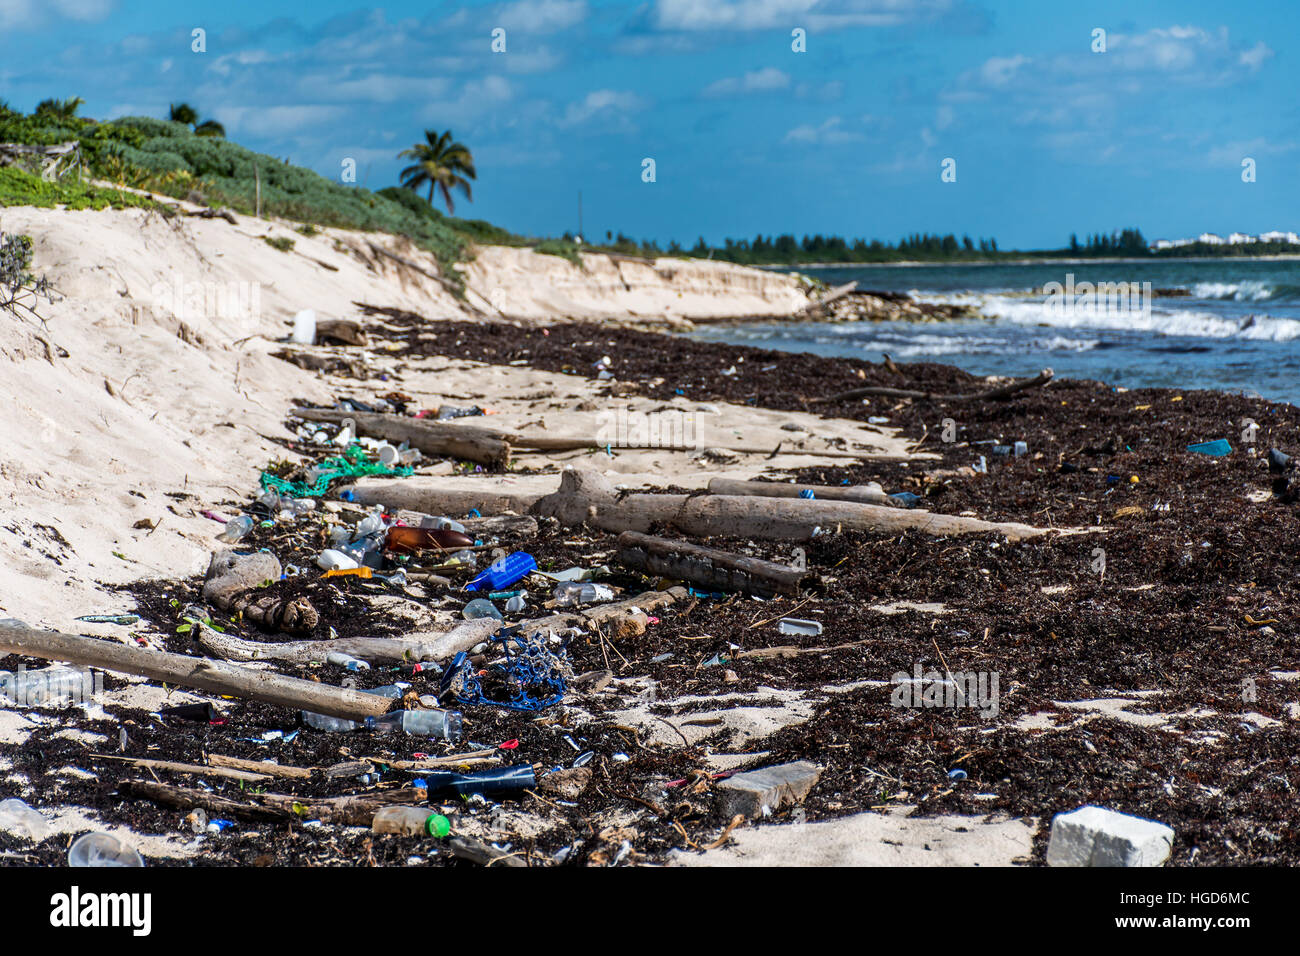 Mexico Coastline ocean Pollution Problem with plastic litter Stock Photo